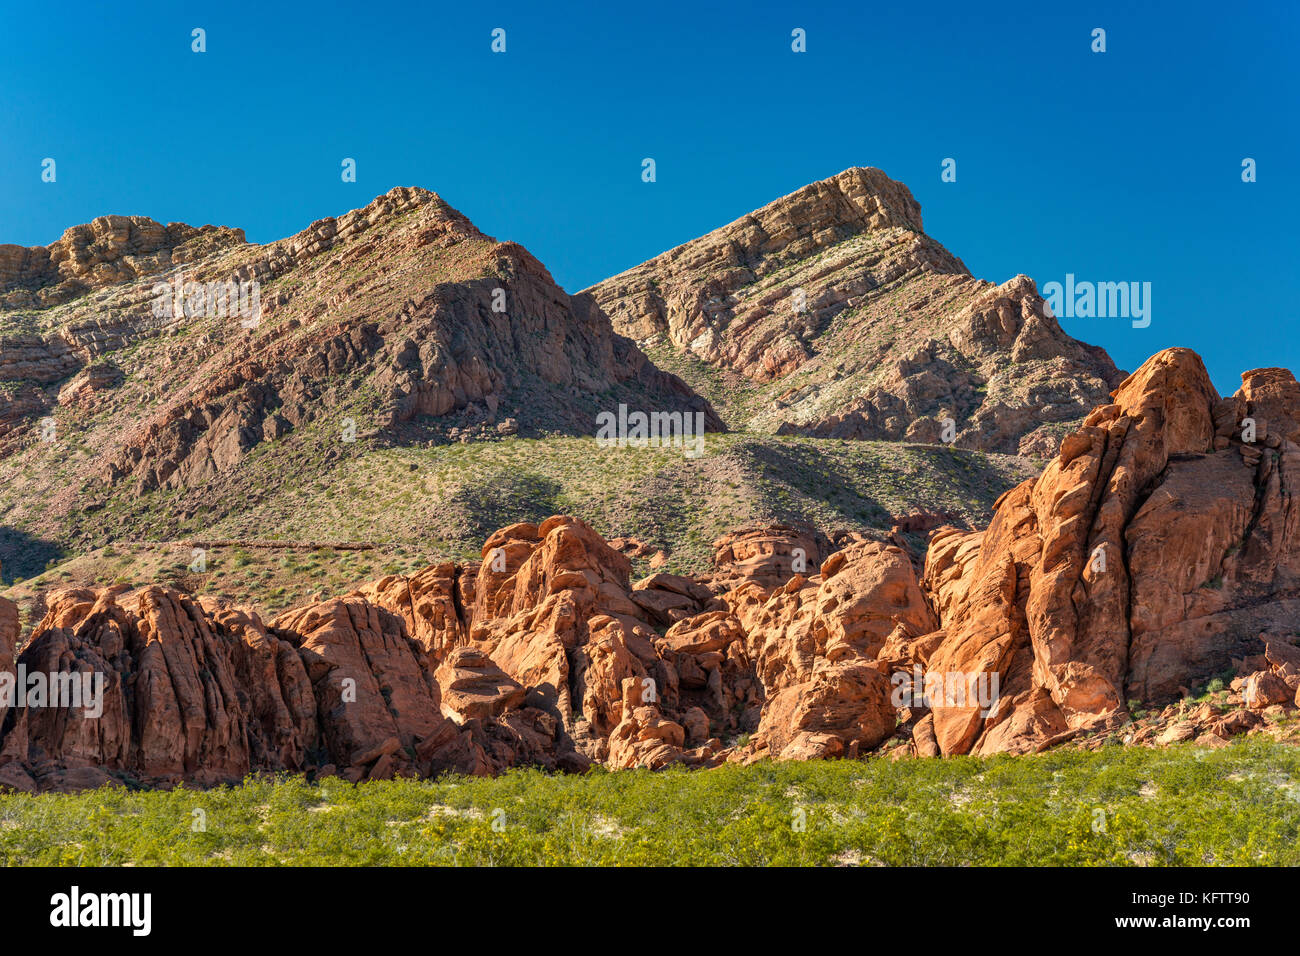 Rock formations at Redstone Trail, Northshore Road area, Lake Mead National Recreation Area, Nevada, USA - Stock Image